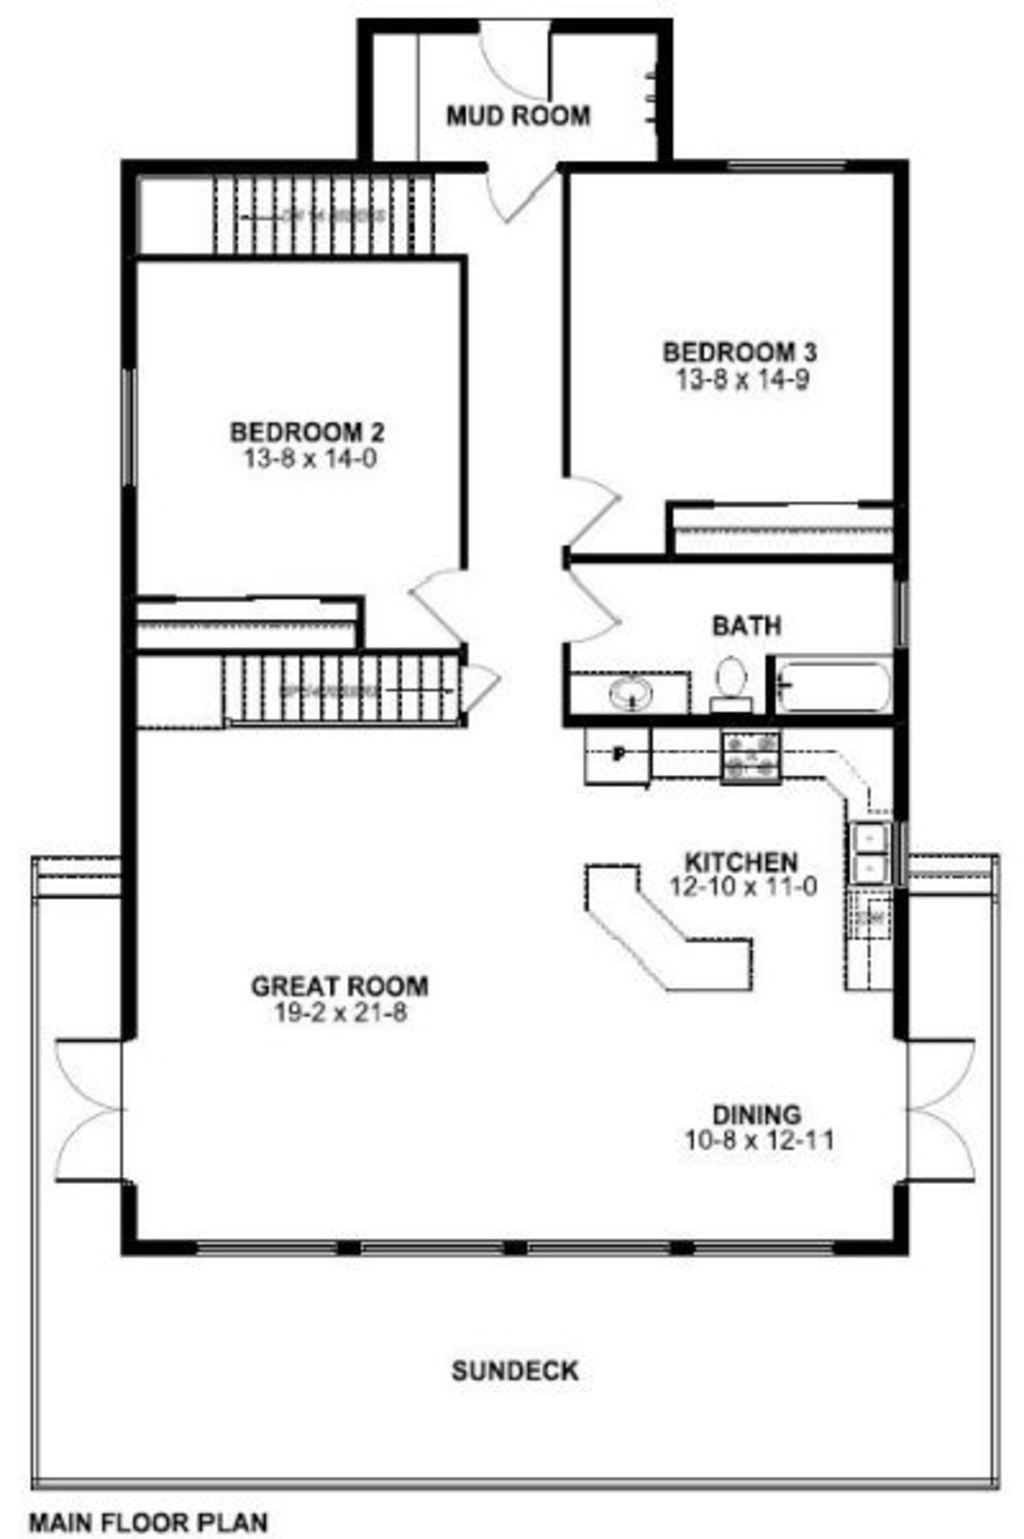 A Square Feet Batrooms Bedrooms Square Feet Free House Plan A Frame House Plans A Frame Cabin Plans Free House Plans